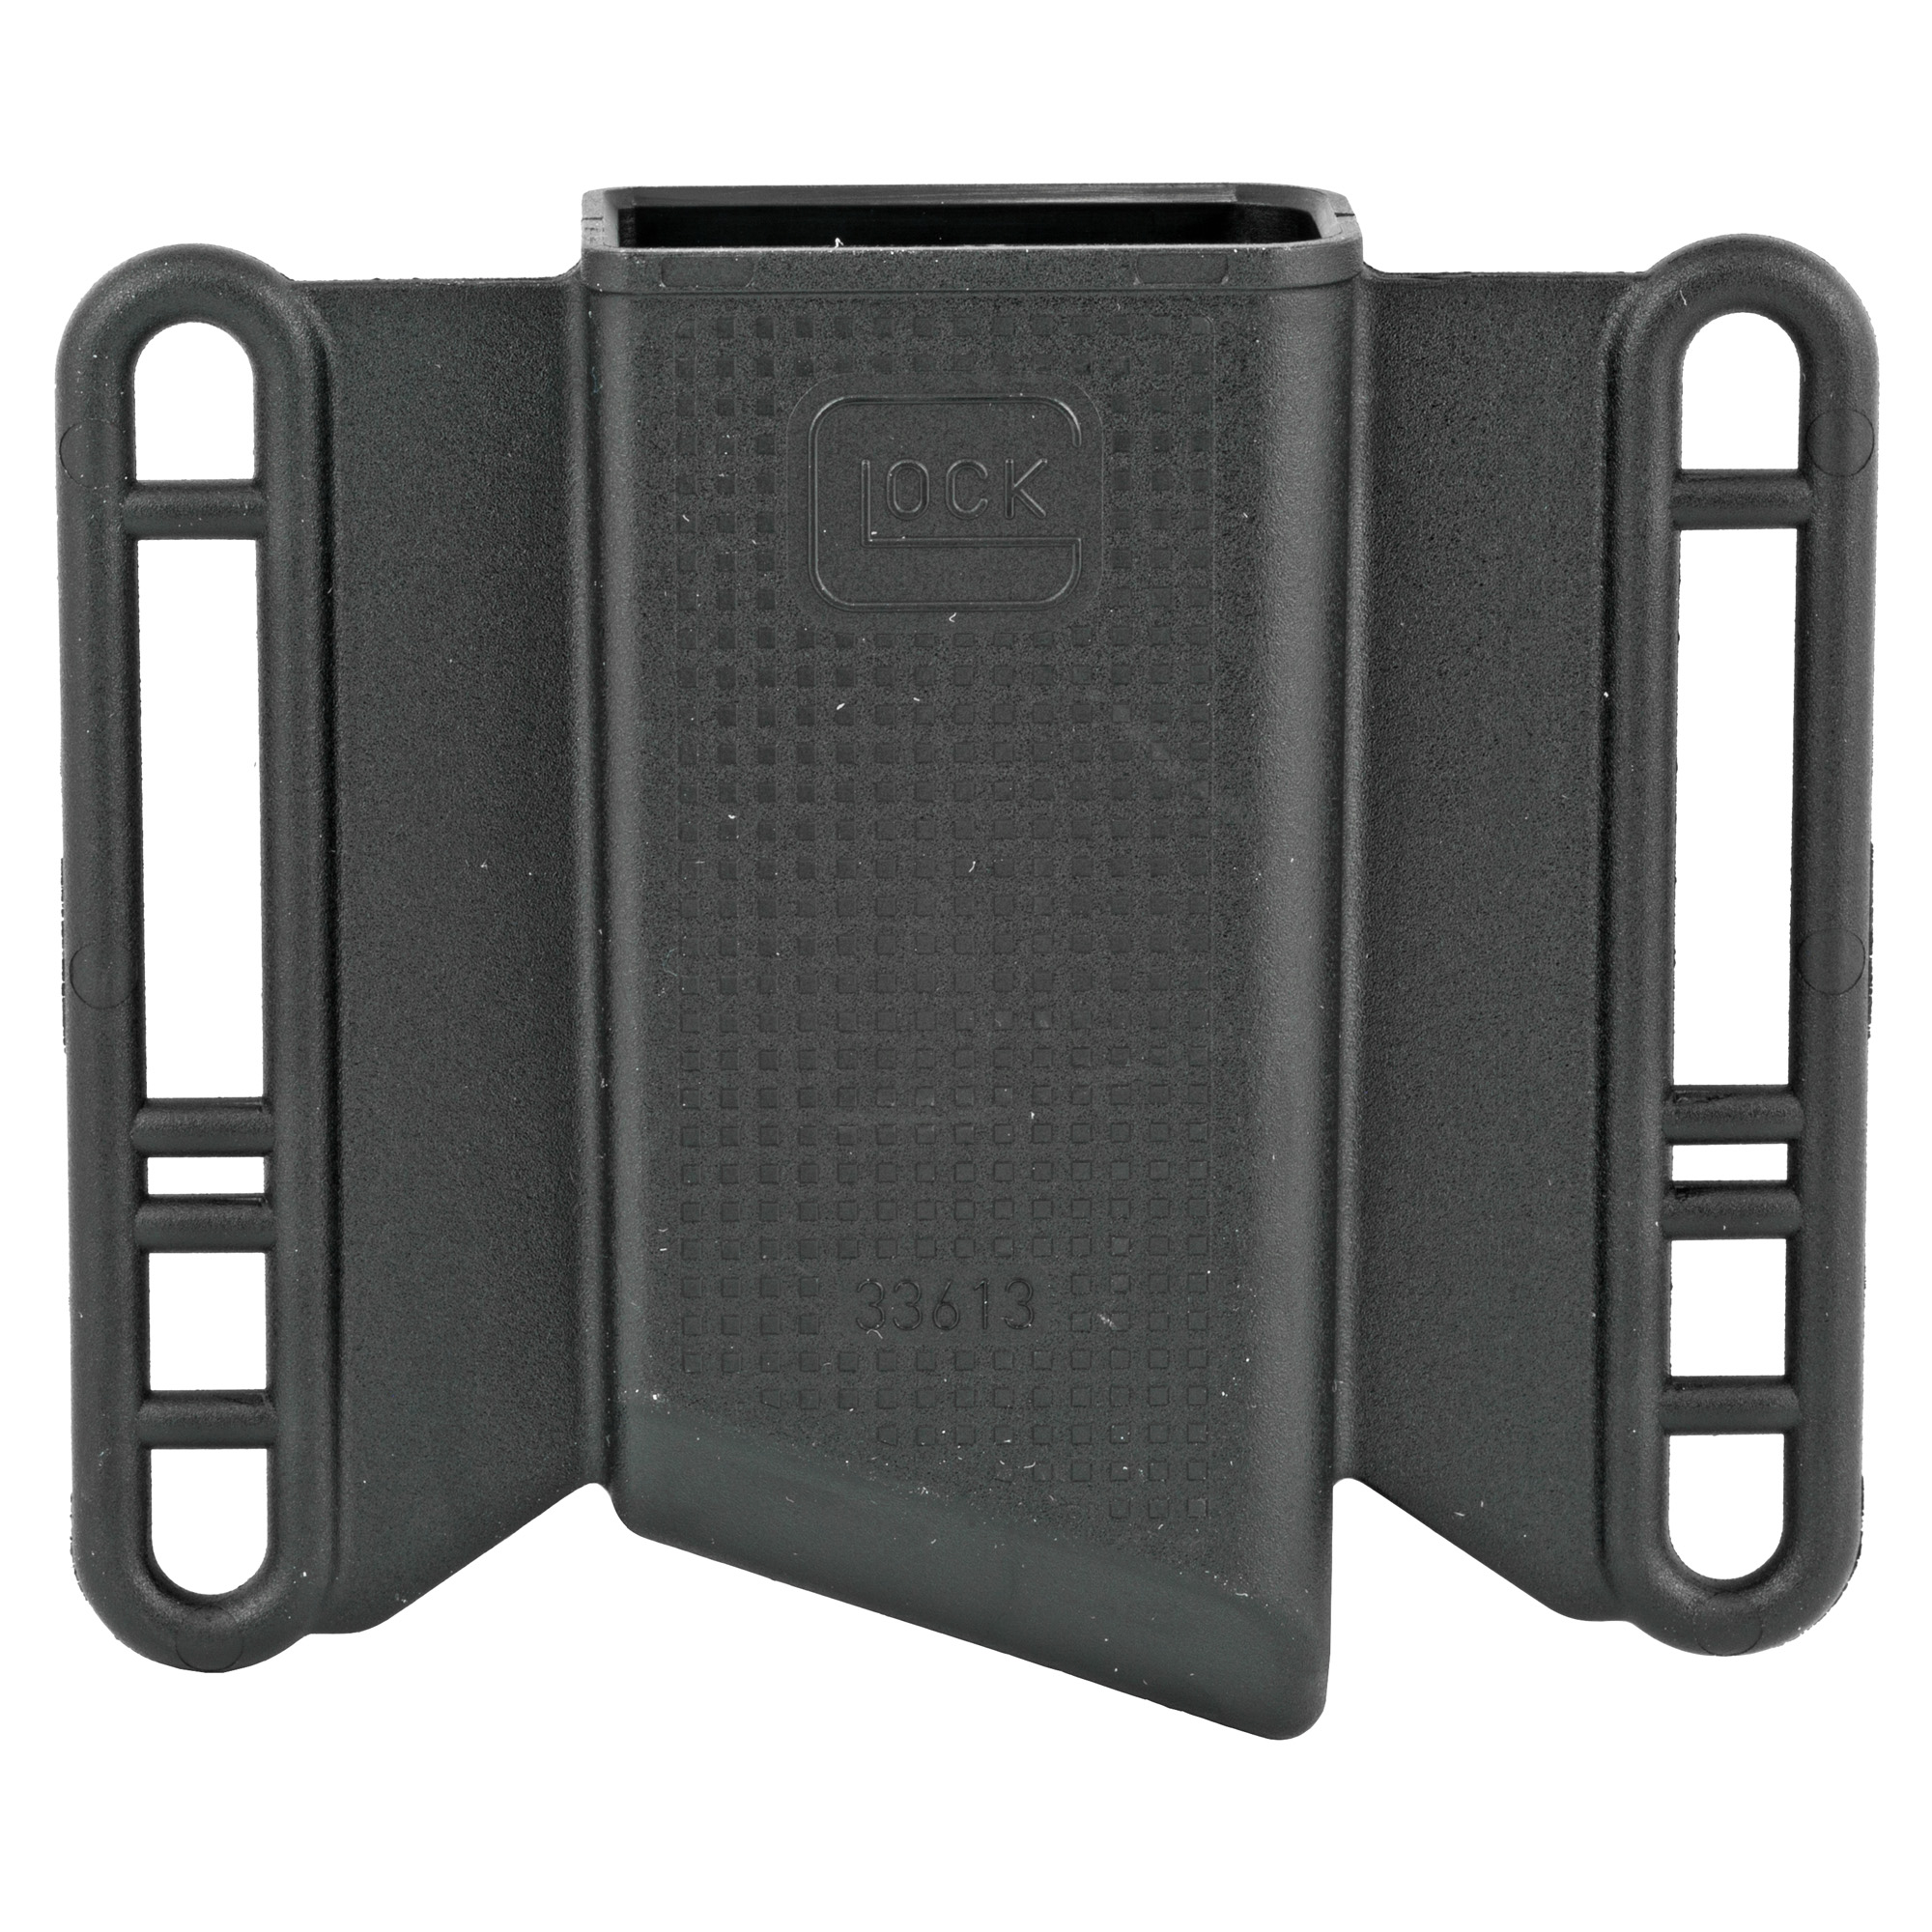 This is a OEM single magazine pouch for Glock 43. It is made from the same highly durable polymer that you have come to depend on. The pouch has an innovative contoured design that allows for magazine retention without the need for any straps giving you greater speed and simplicity.